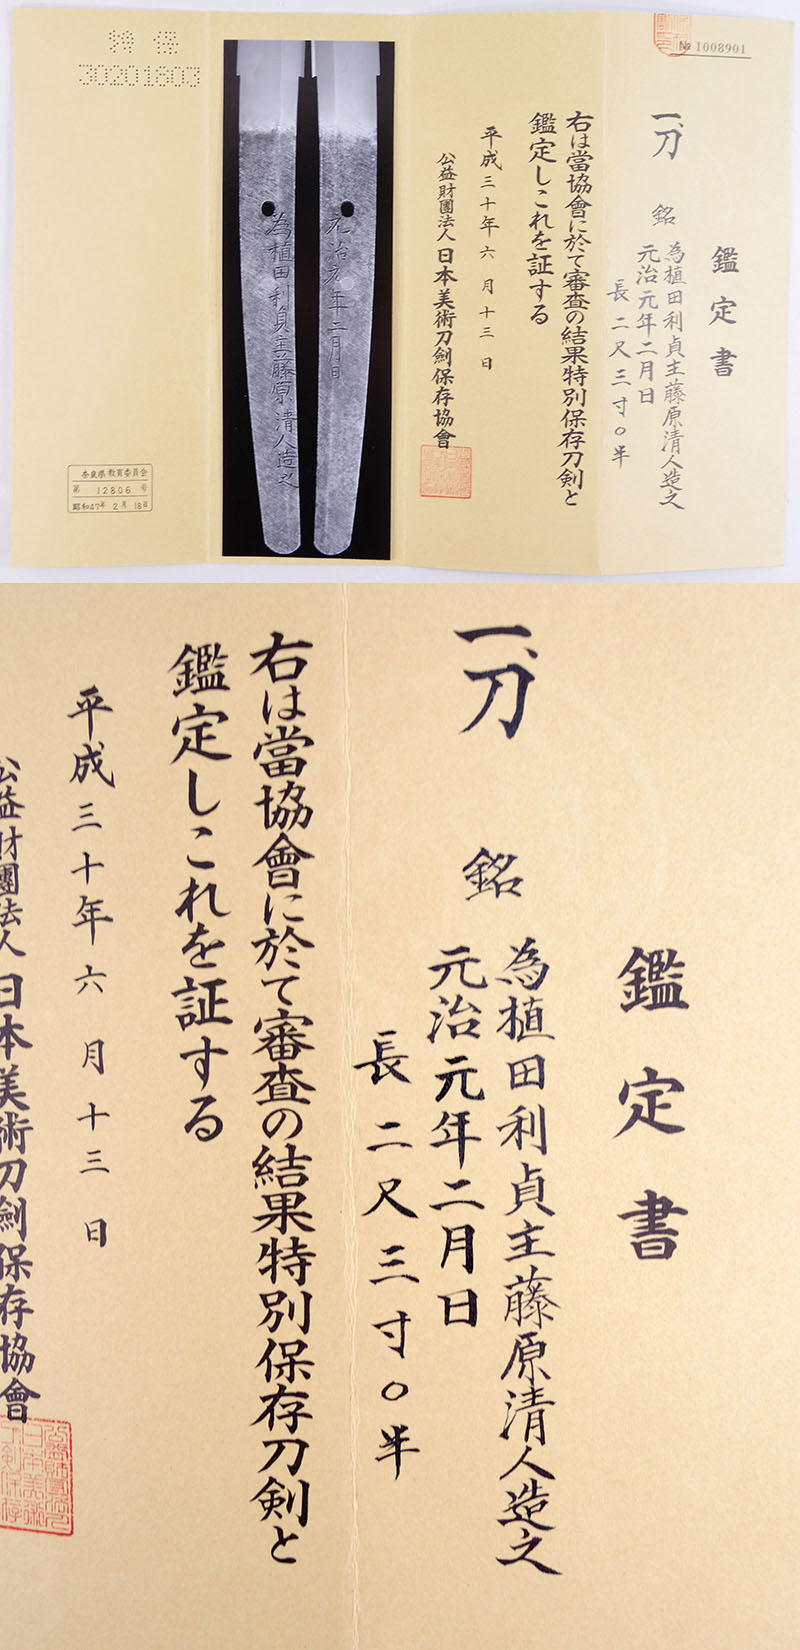 為植田利貞主藤原清人造之 Picture of Certificate